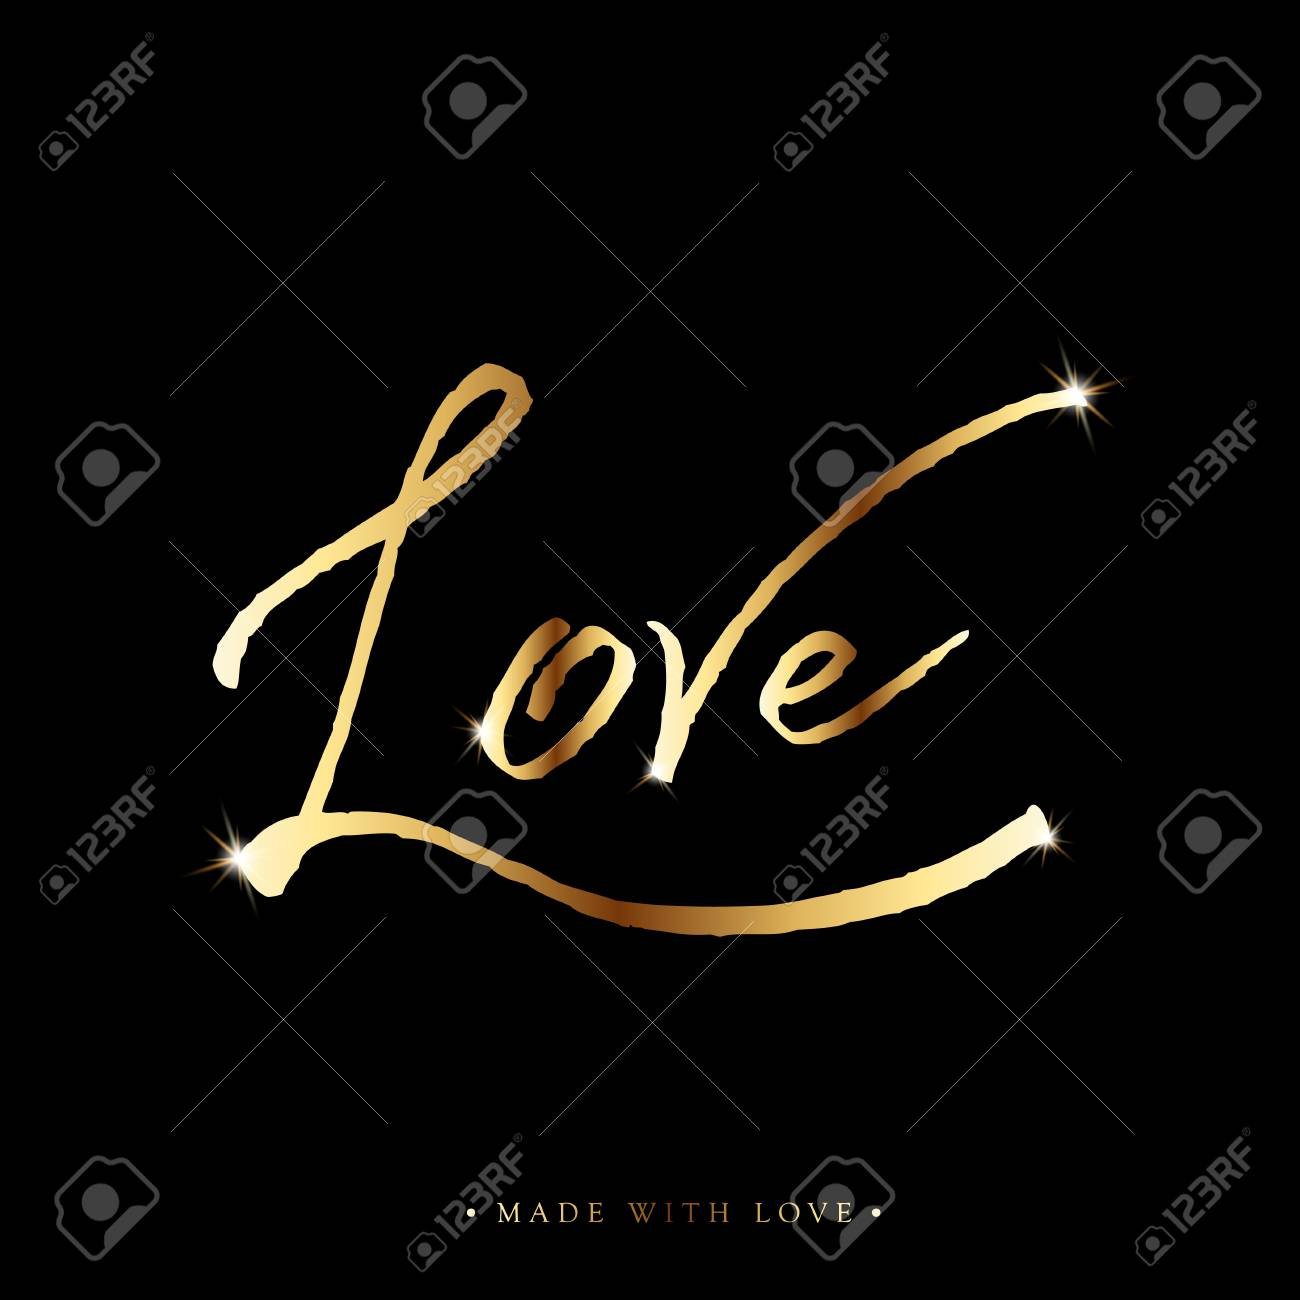 Love gold calligraphy valentines day romantic greeting card valentines day romantic greeting card handwritten modern golden shiny brush lover lettering for love cards banners posters m4hsunfo